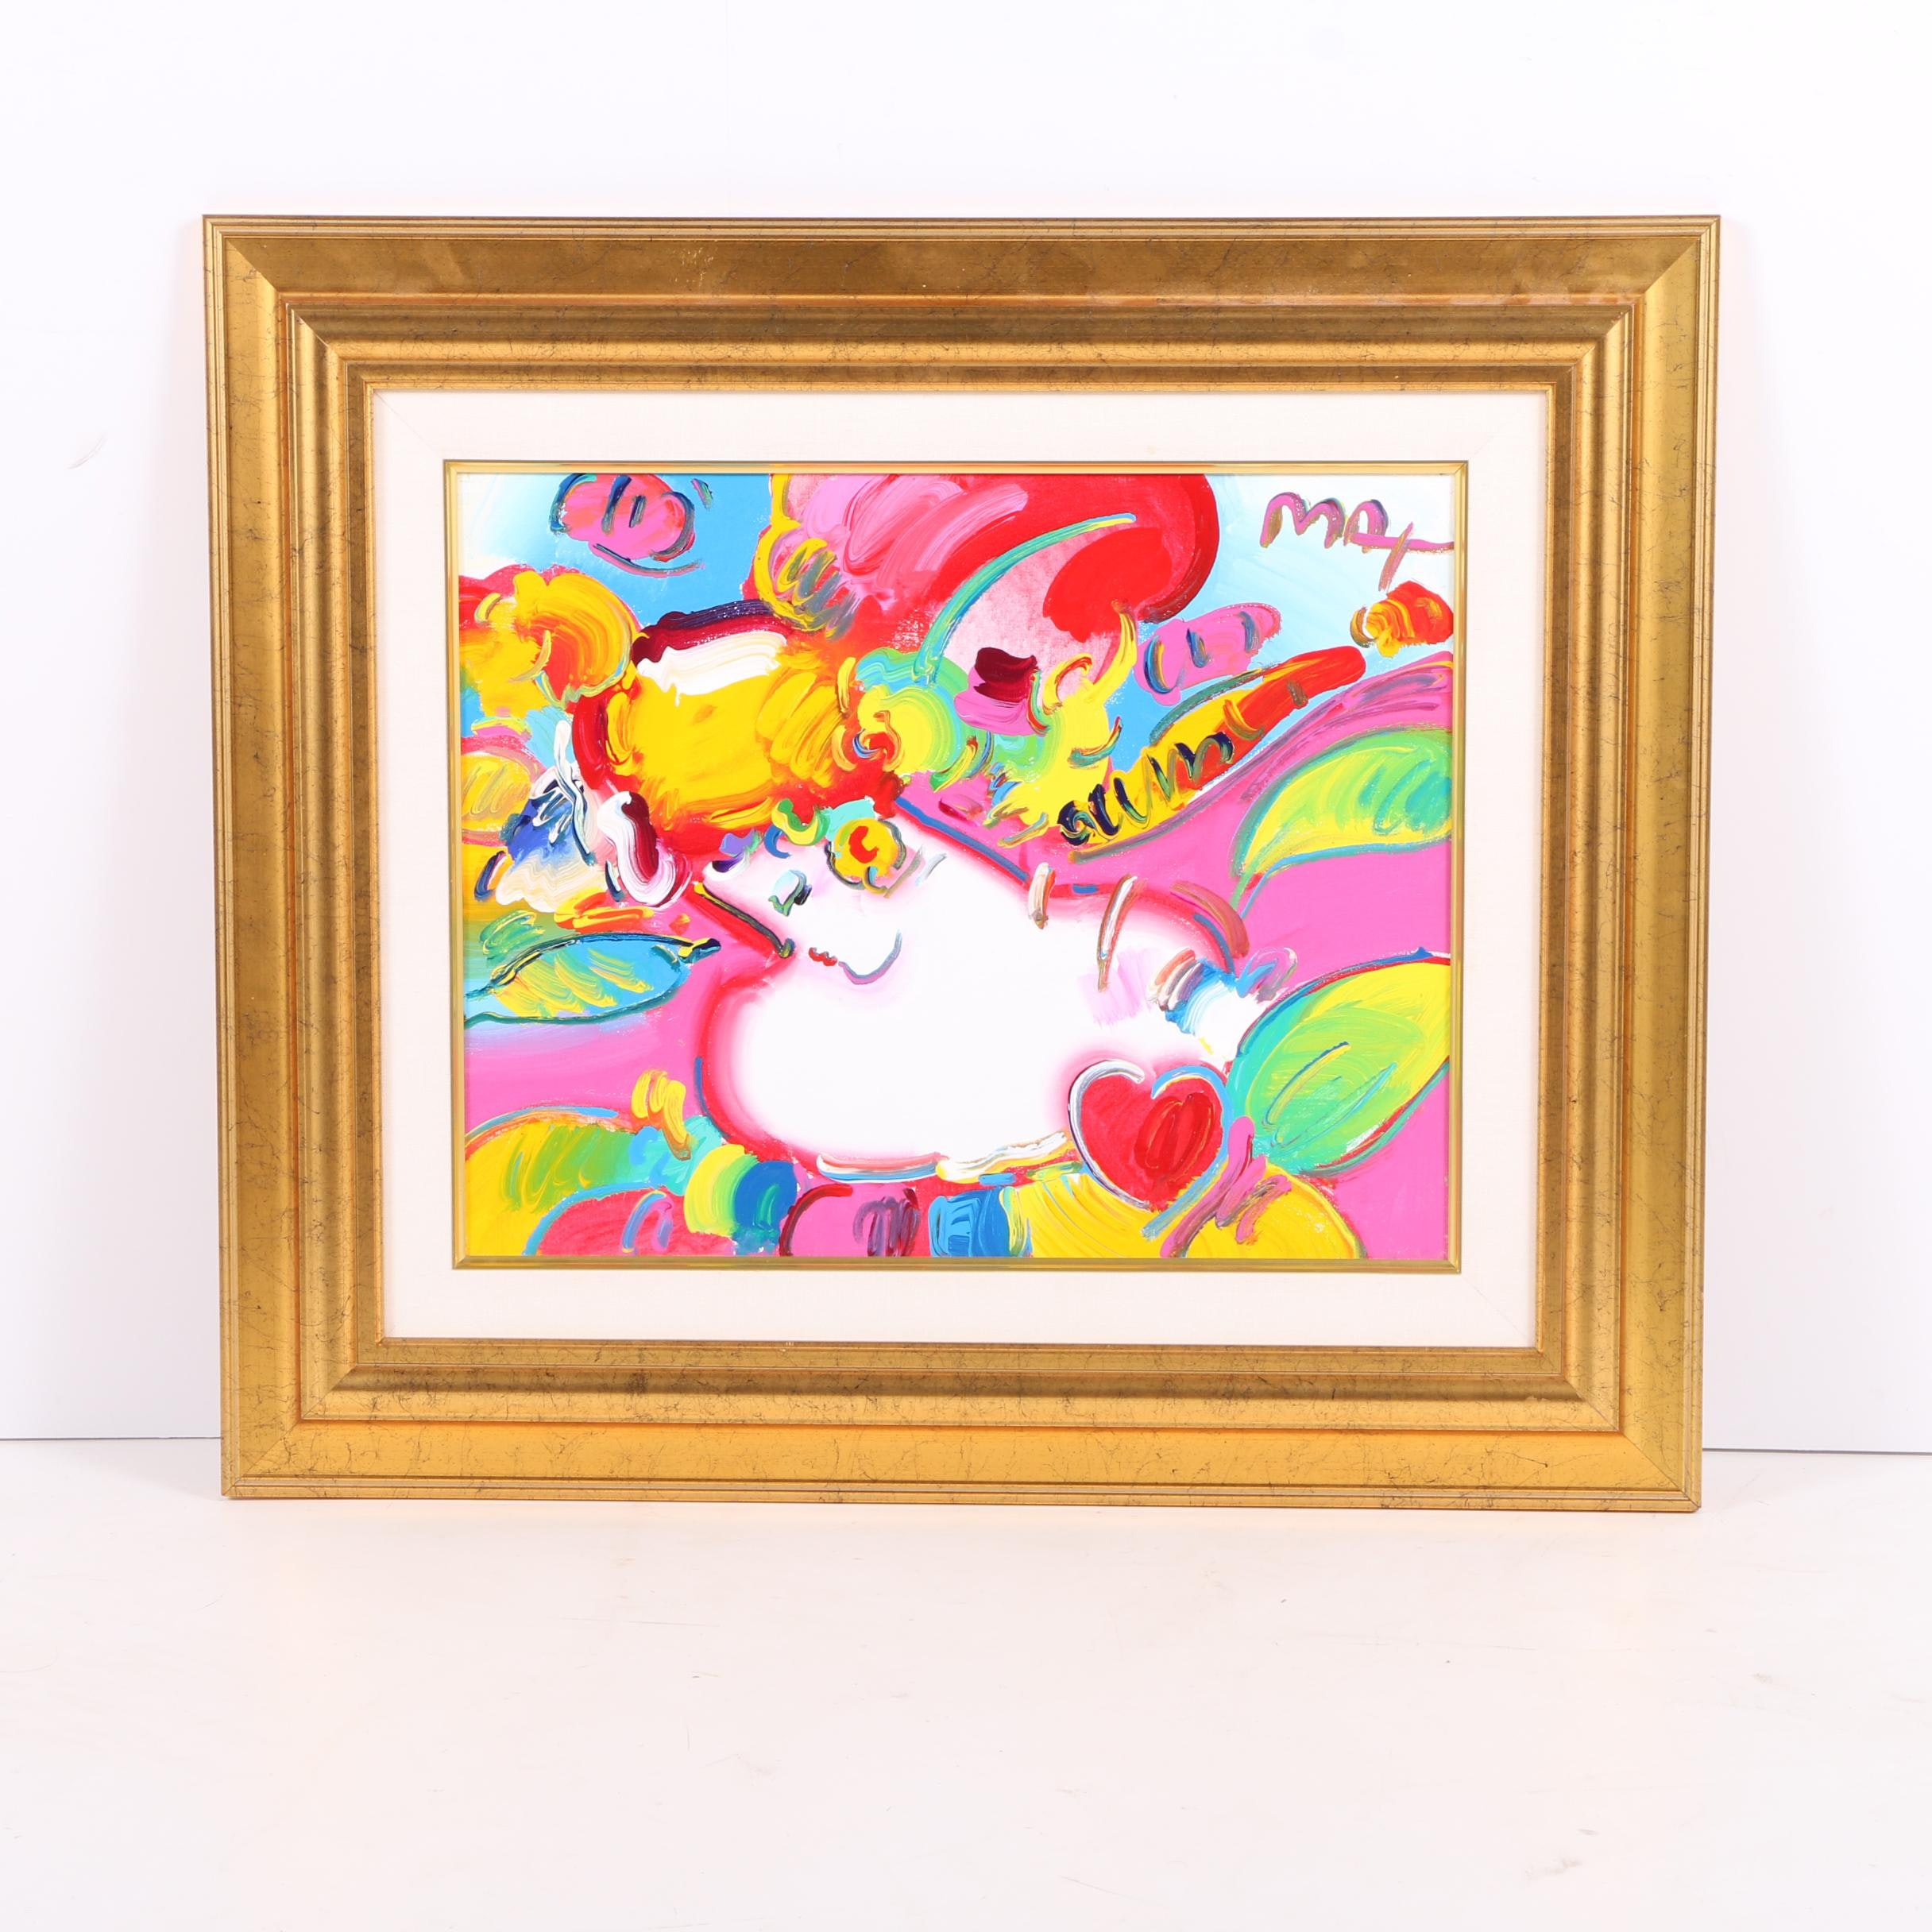 "Peter Max 2001 Acrylic Painting on Canvas ""Flower Blossom Lady Detail"""